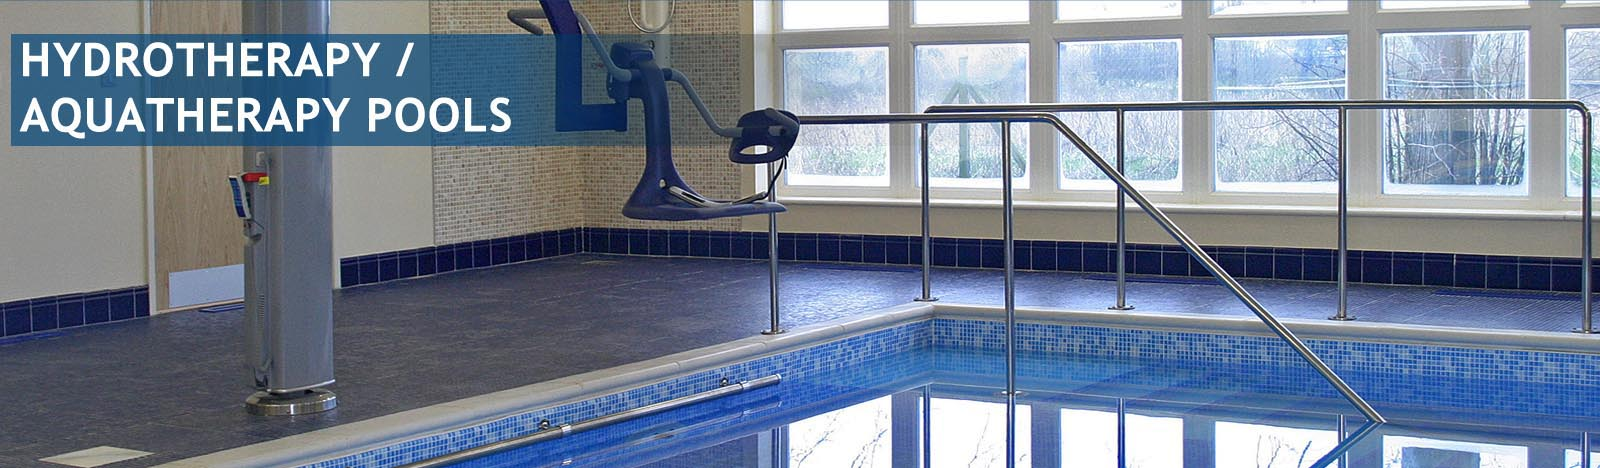 hydrotherapy pools builders wales